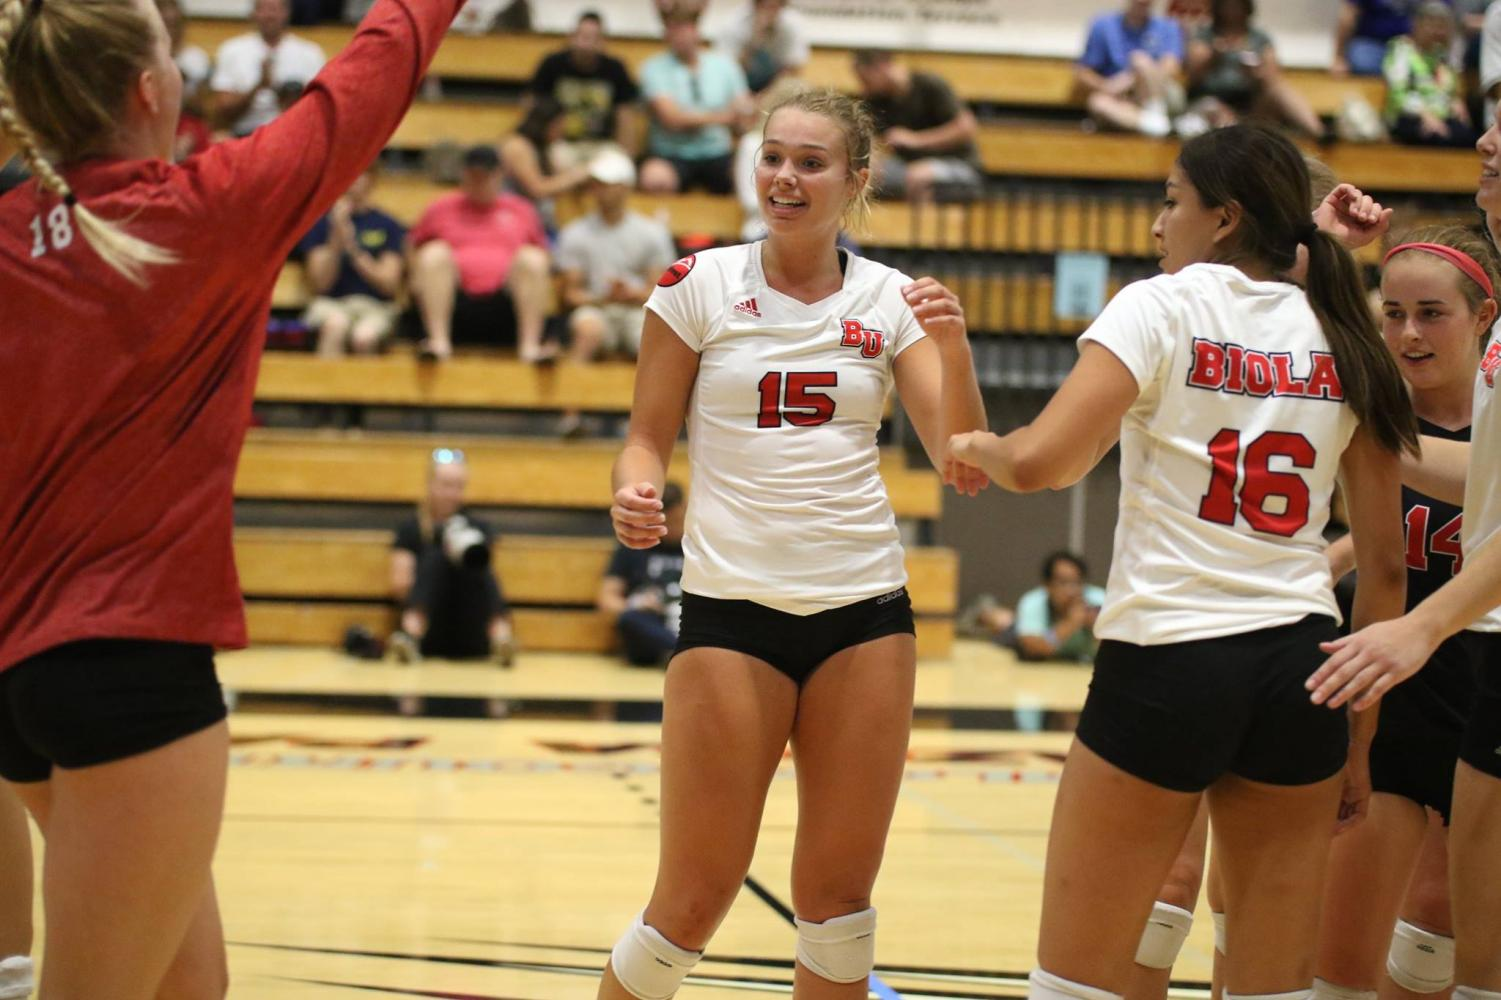 Sophomore outside hitter Christina DenBoer celebrates with her team during the Eagles' win over Sonoma State on Sept. 1. Courtesy George Rodriguez/Biola Athletics